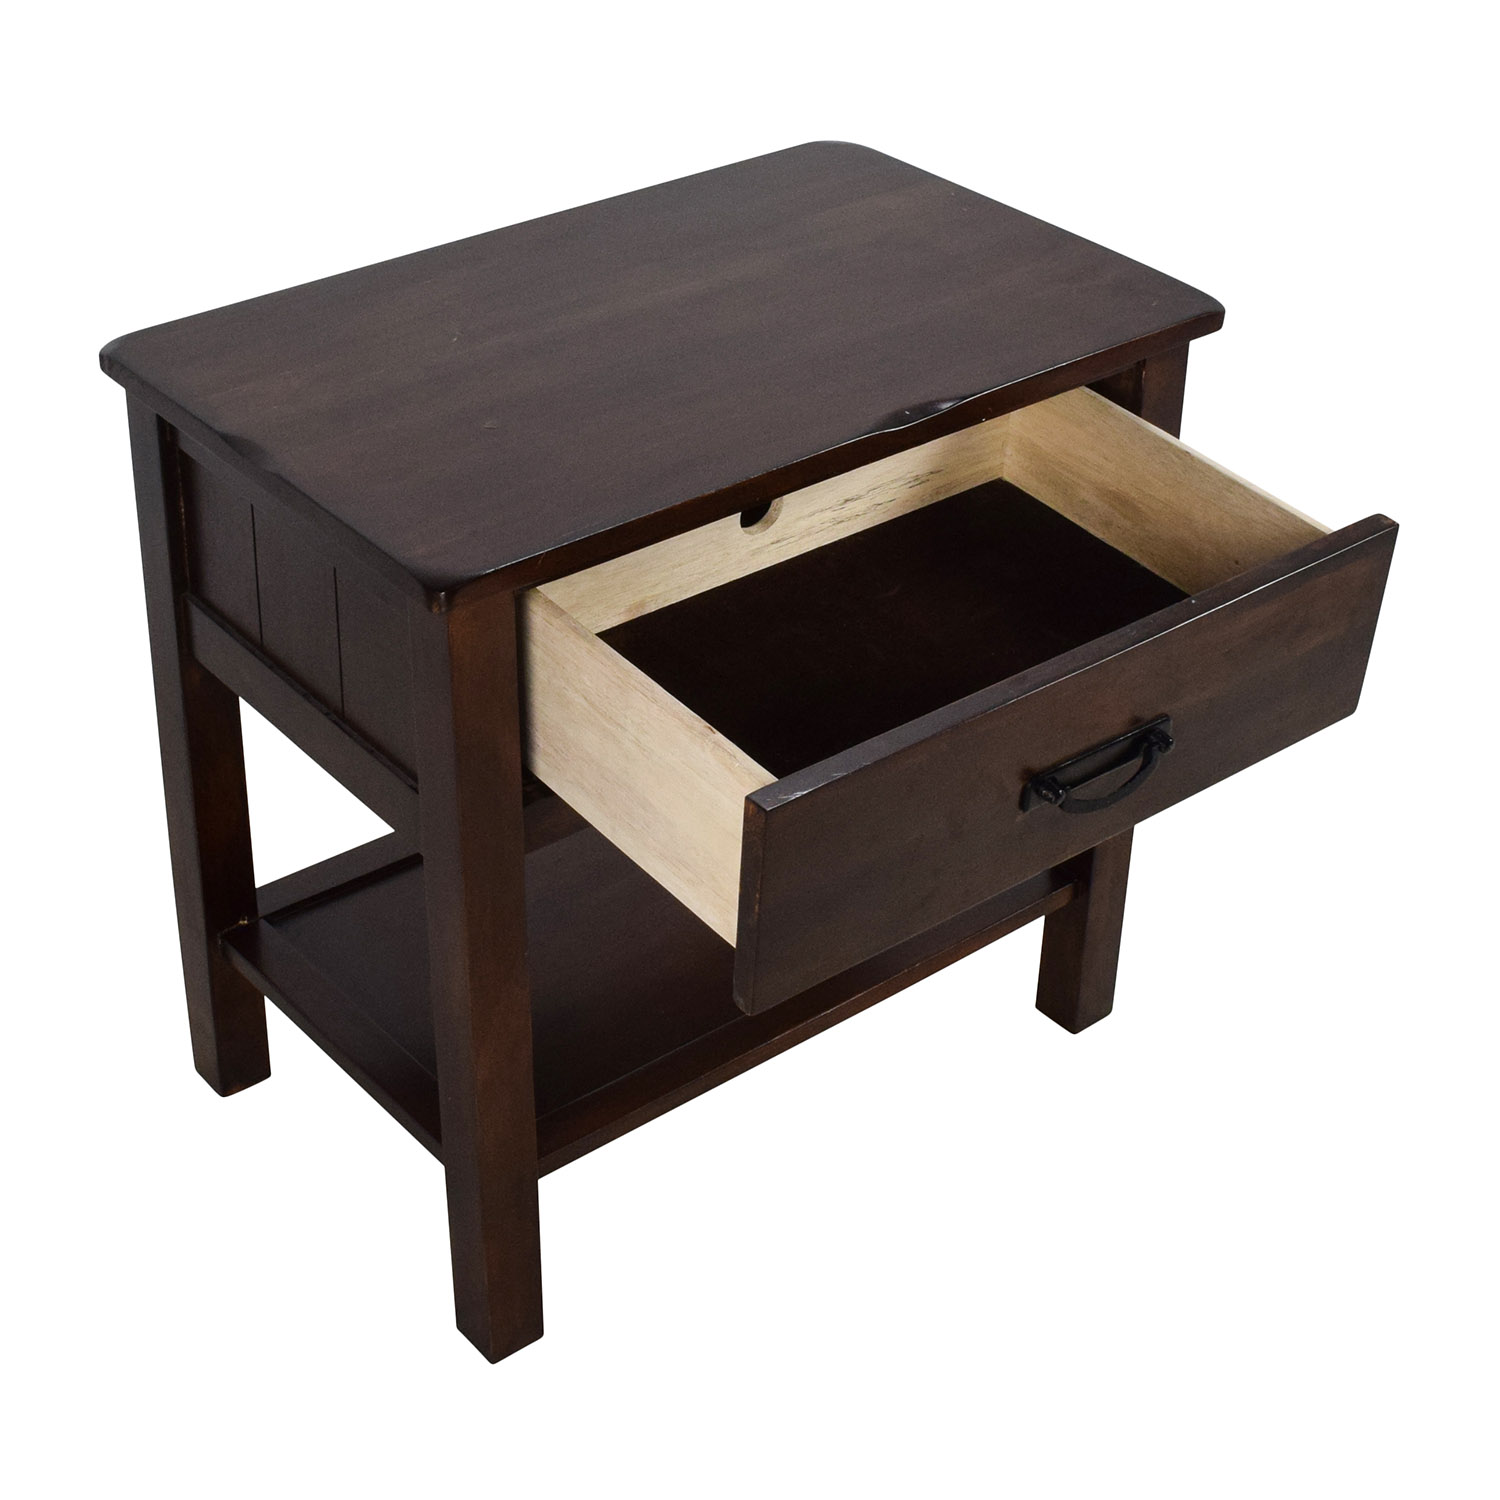 OFF Rustic Brown Mission Style Nightstand Tables